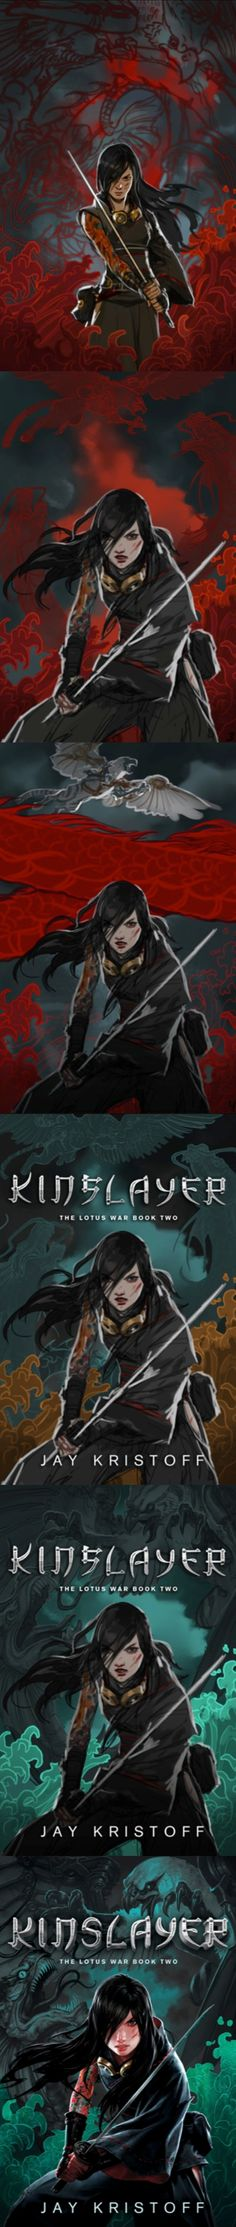 The cover evolution of Kinslayer by Jay Kristoff. Illustrated by Jason Chan.